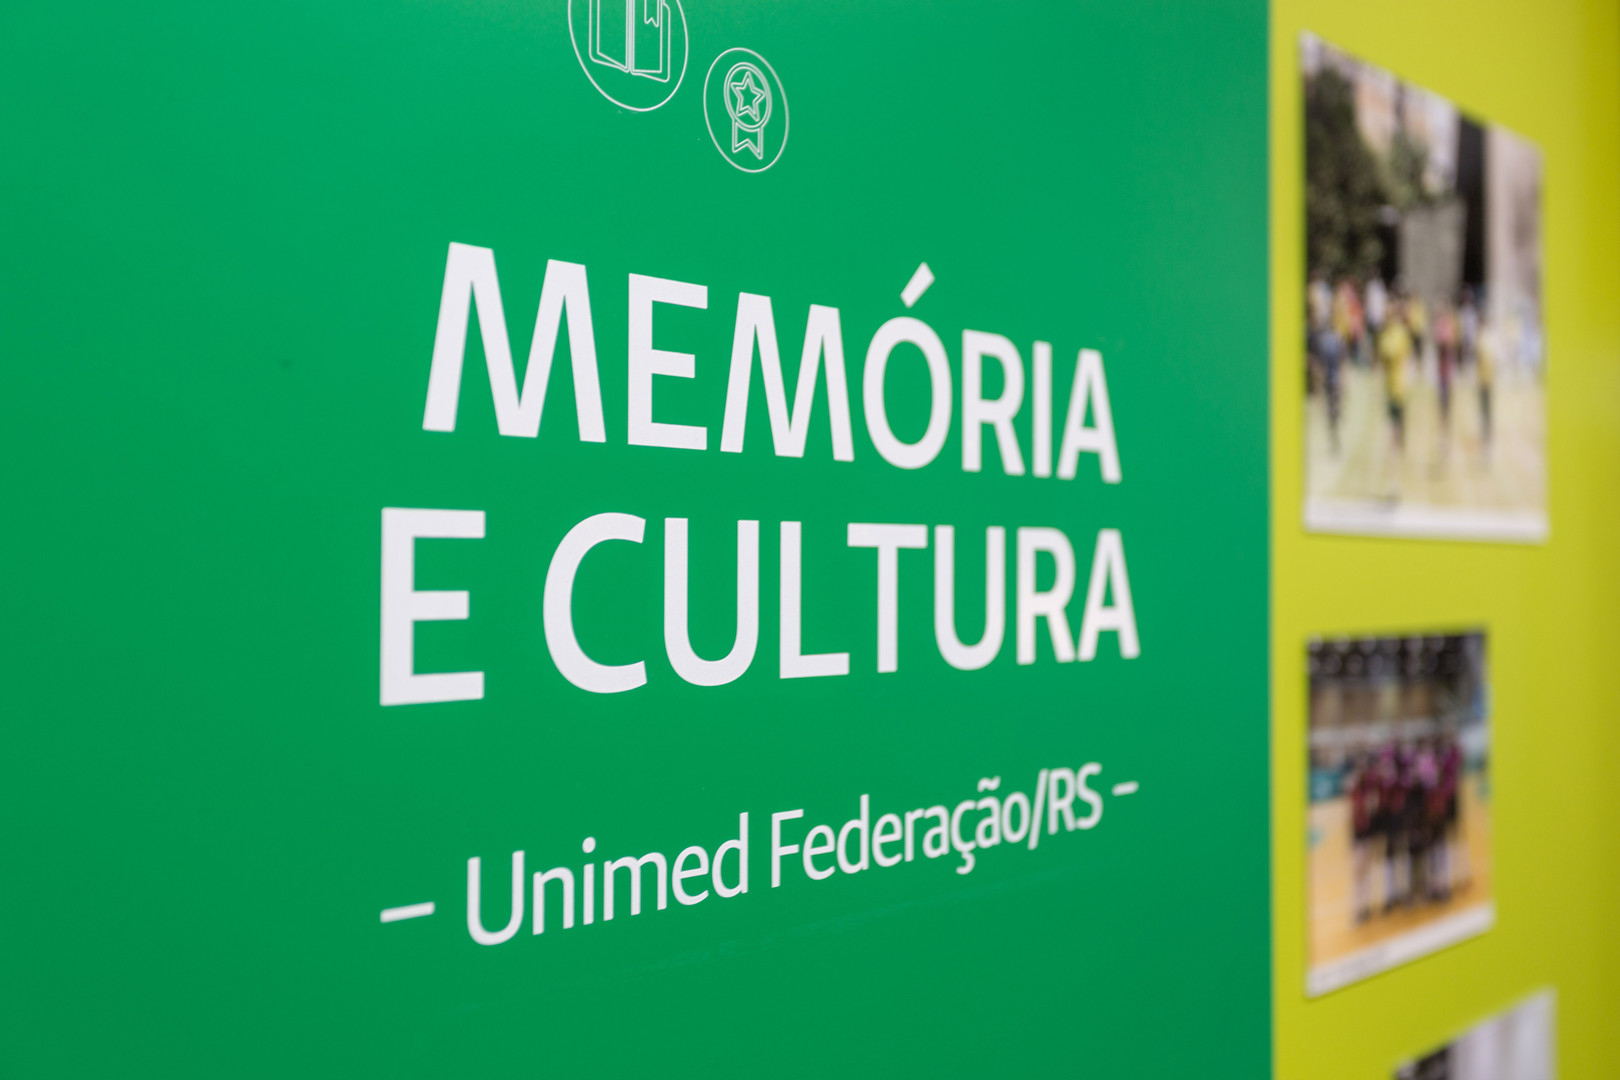 Memorial Unimed - Porto Alegre/RS